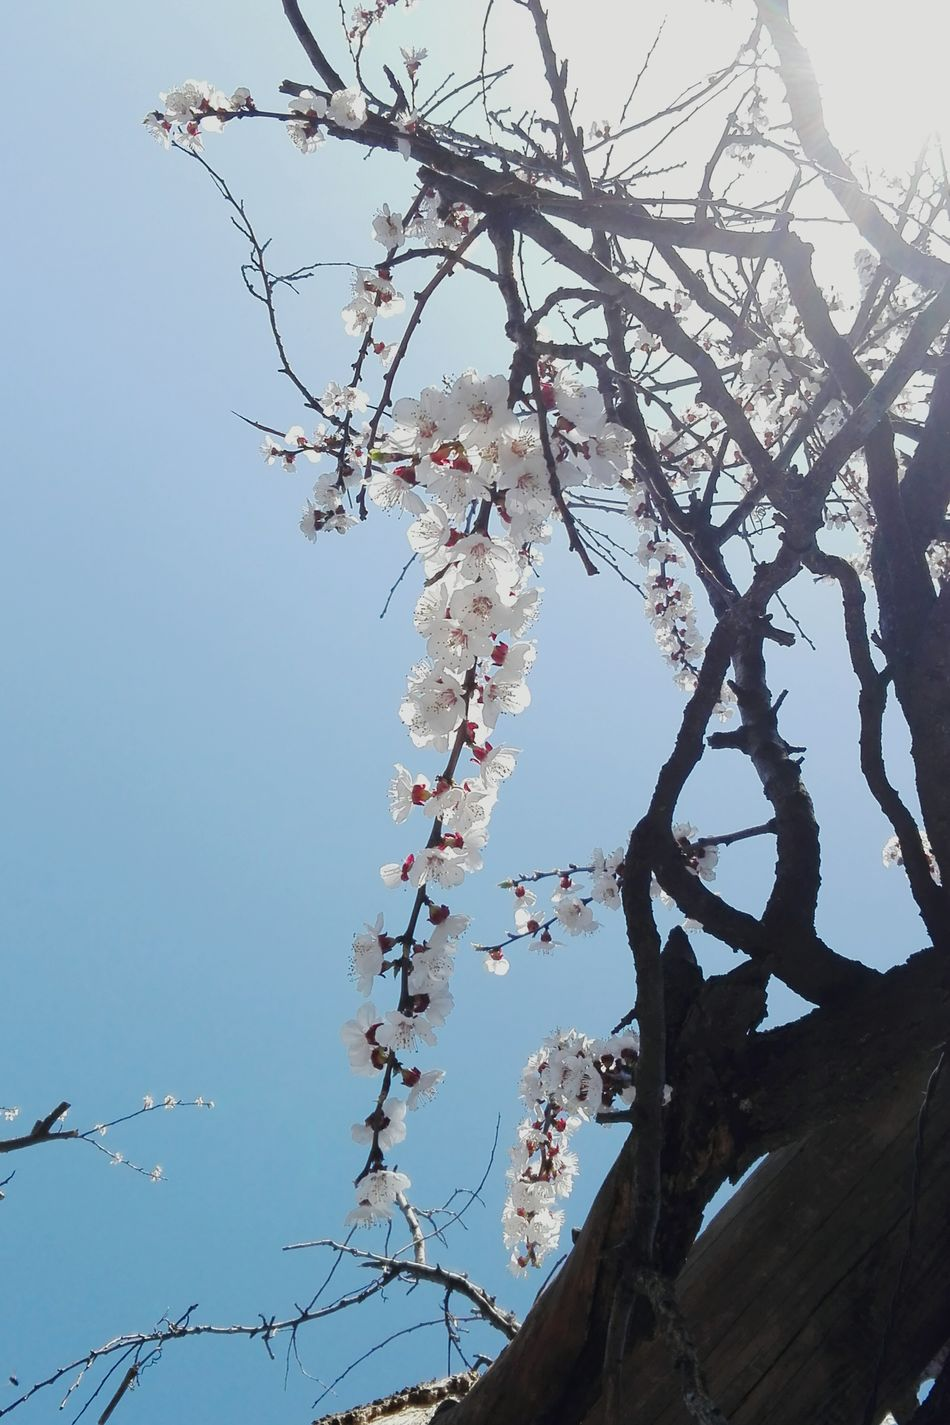 Nature Tree Beauty In Nature Branch Low Angle View No People Sky Outdoors Close-up Apricot Flowers Wolfzuachis Showcase: March Veronica Ionita @WOLFZUACHiV Showcase: 2017 Eyeem Market Huaweiphotography Wolfzuachiv On Market Edited By @wolfzuachis Apricot Blossoms Apricot Branch Blossomed Apricot Tree Blossomed Uppon Blue Sky Apricot Tree Blossomed Springtime EyeEmNewHere